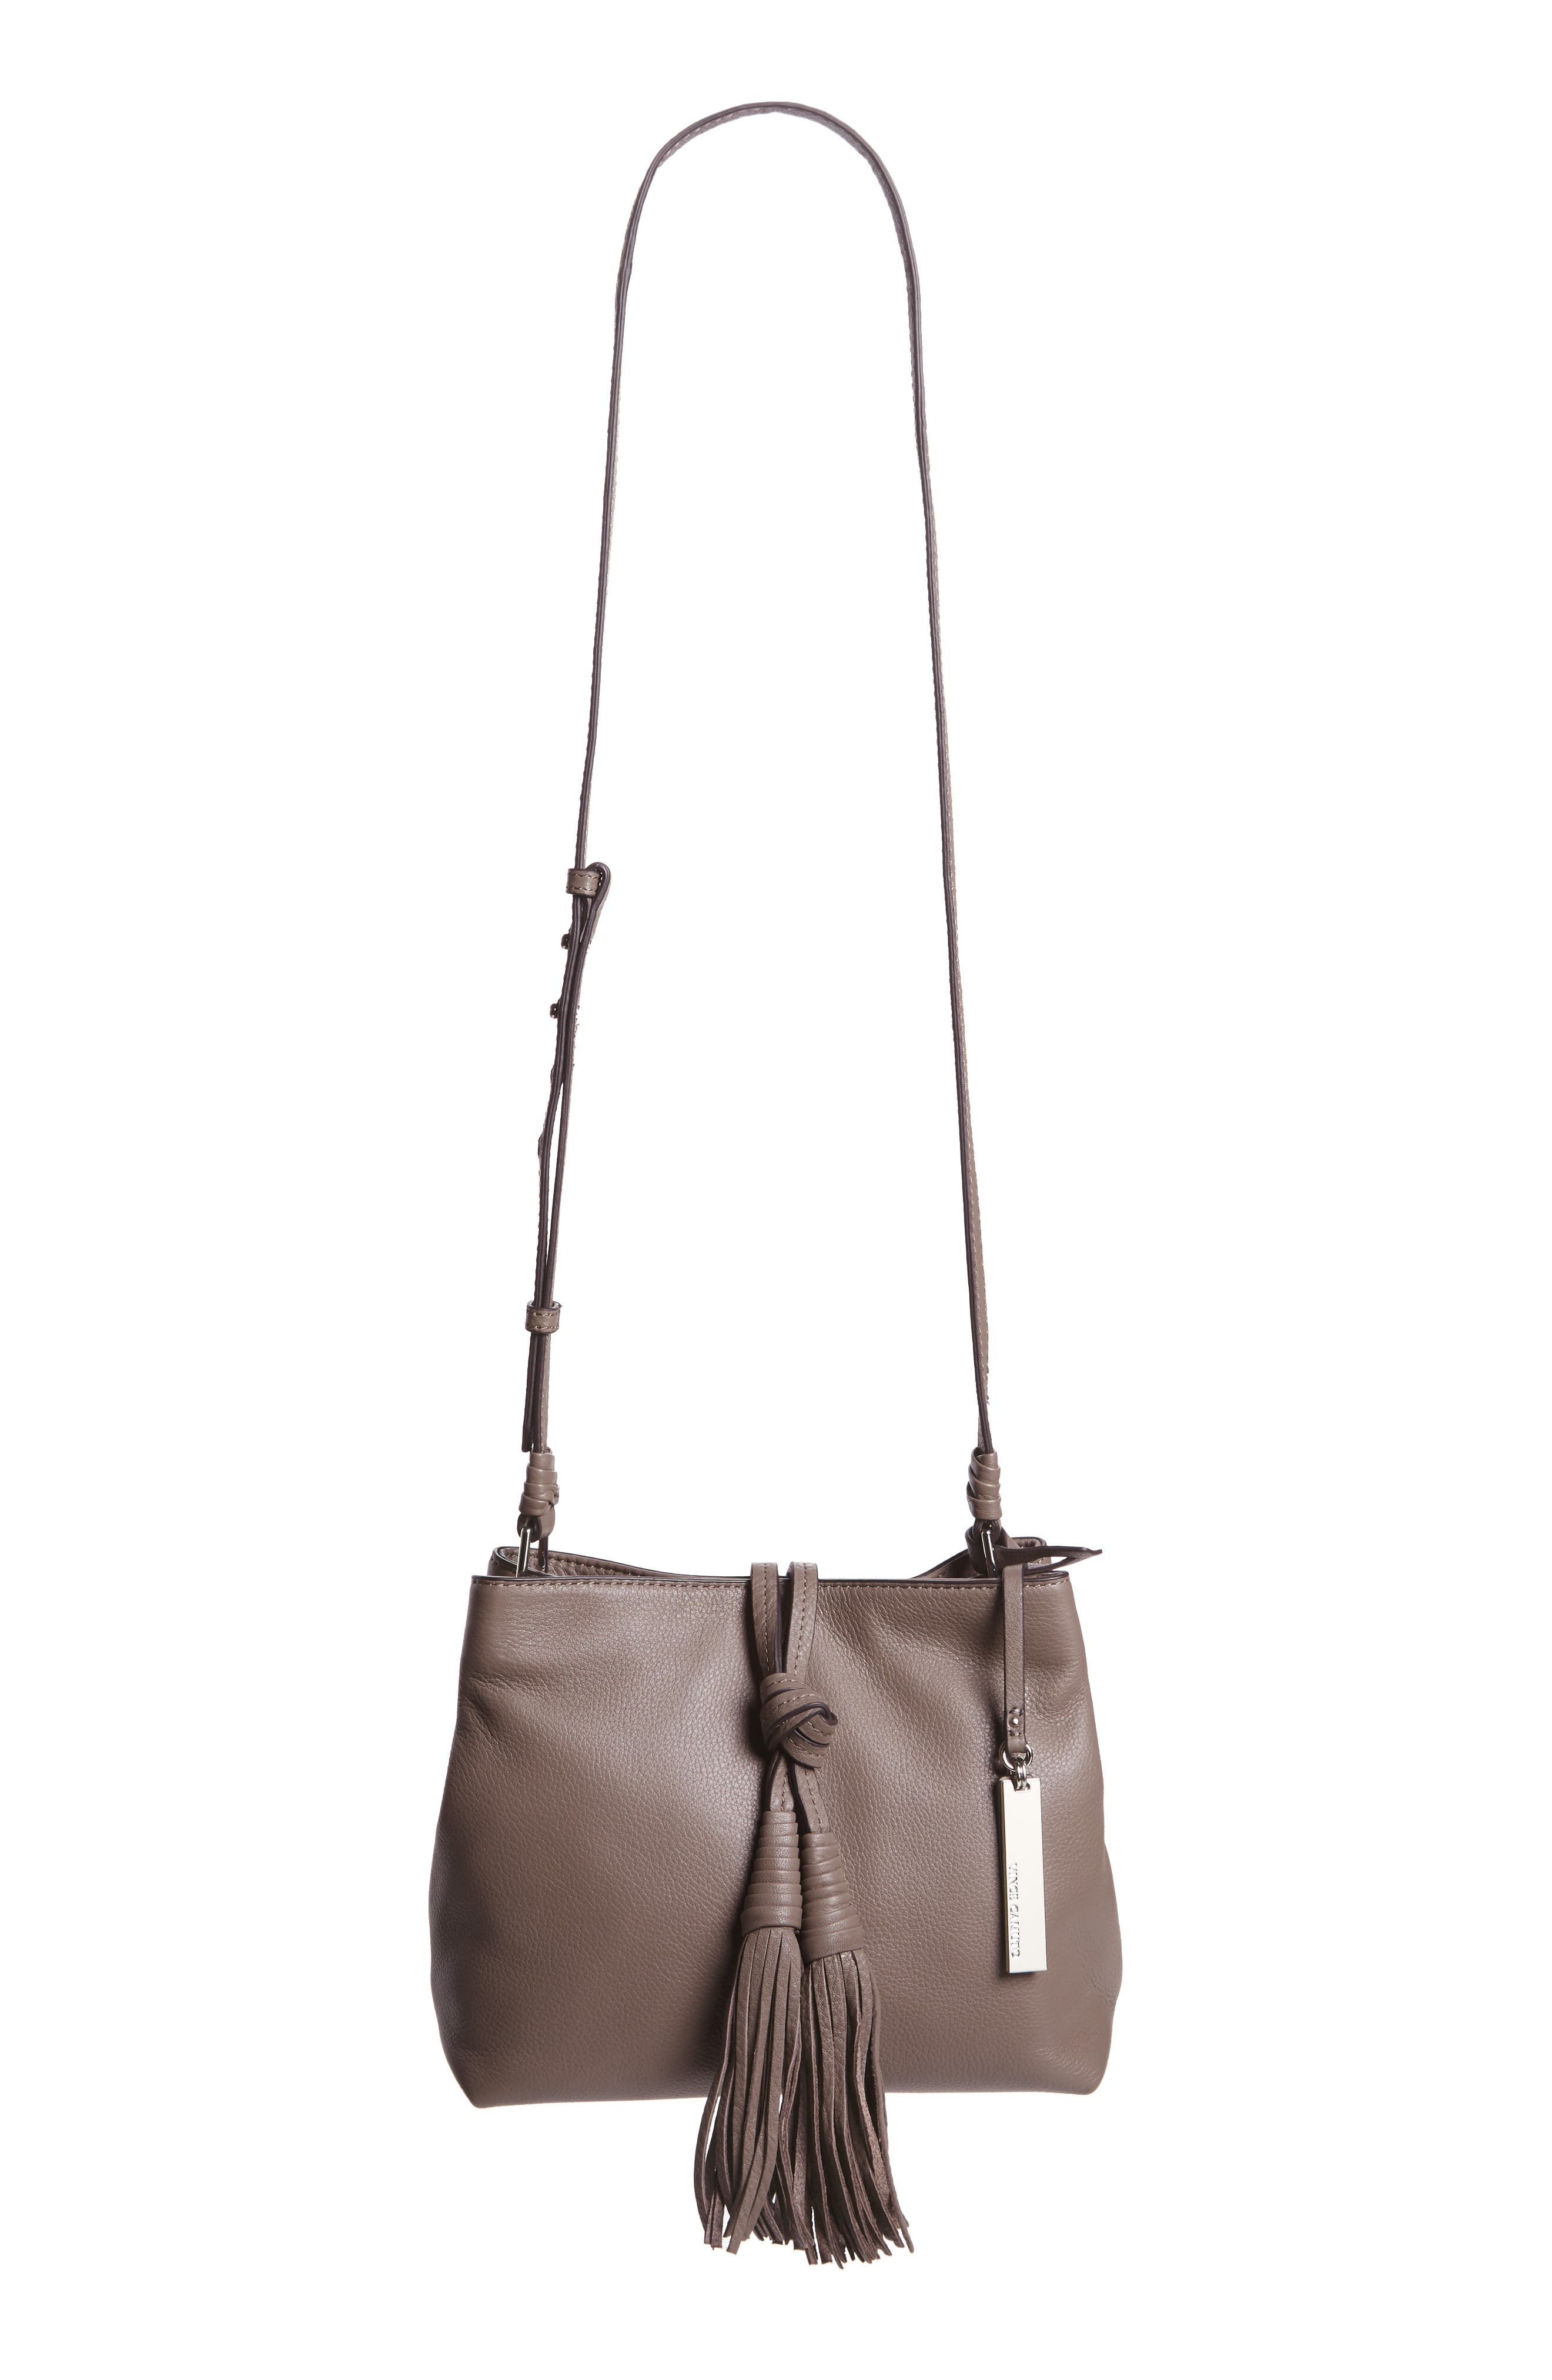 Alternate Image 1 Selected - Vince Camuto Taro Leather Crossbody Bag